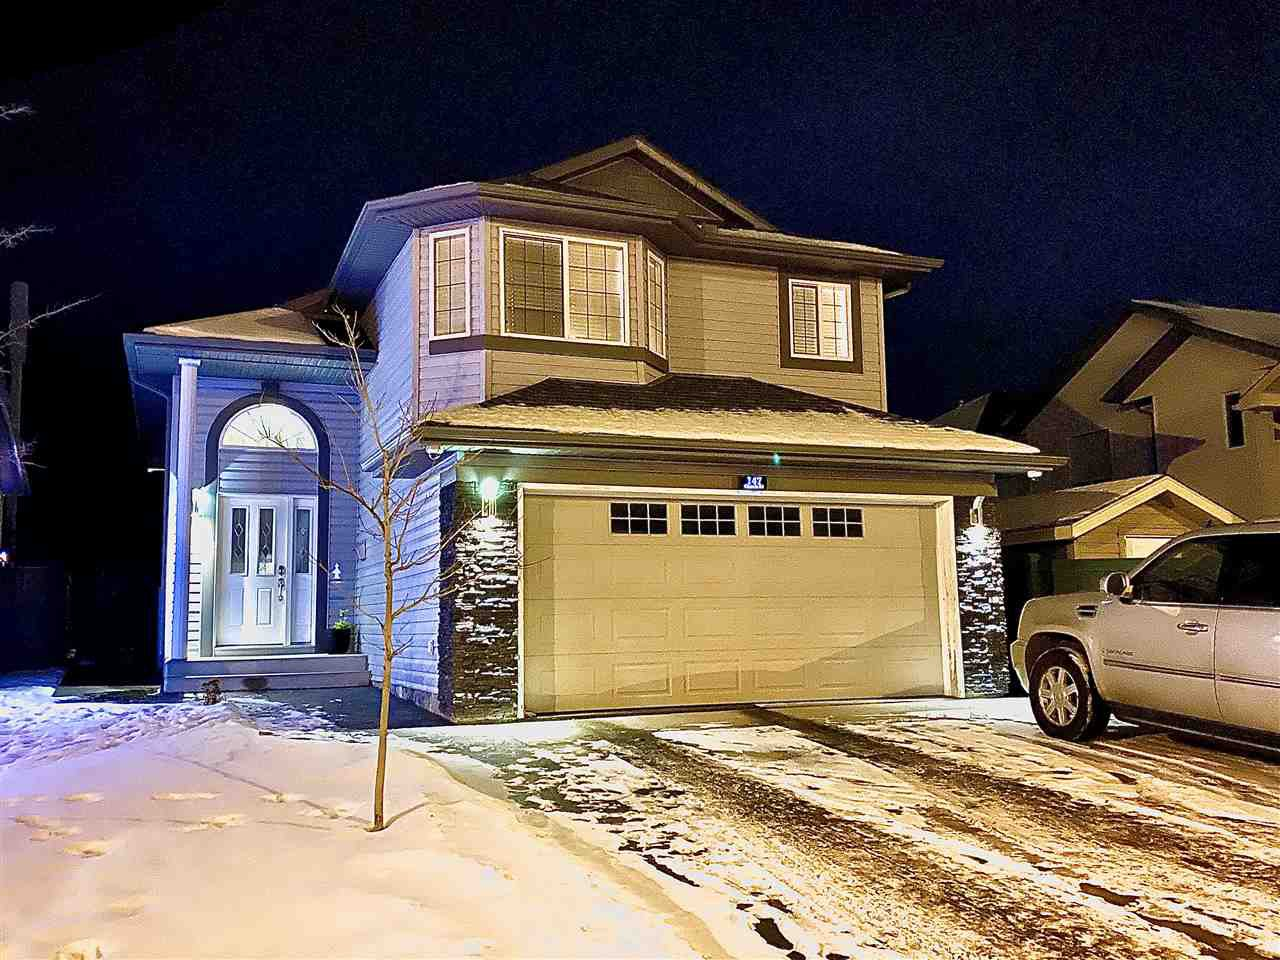 Main Photo: 147 CHATWIN Road: Sherwood Park House for sale : MLS®# E4182901